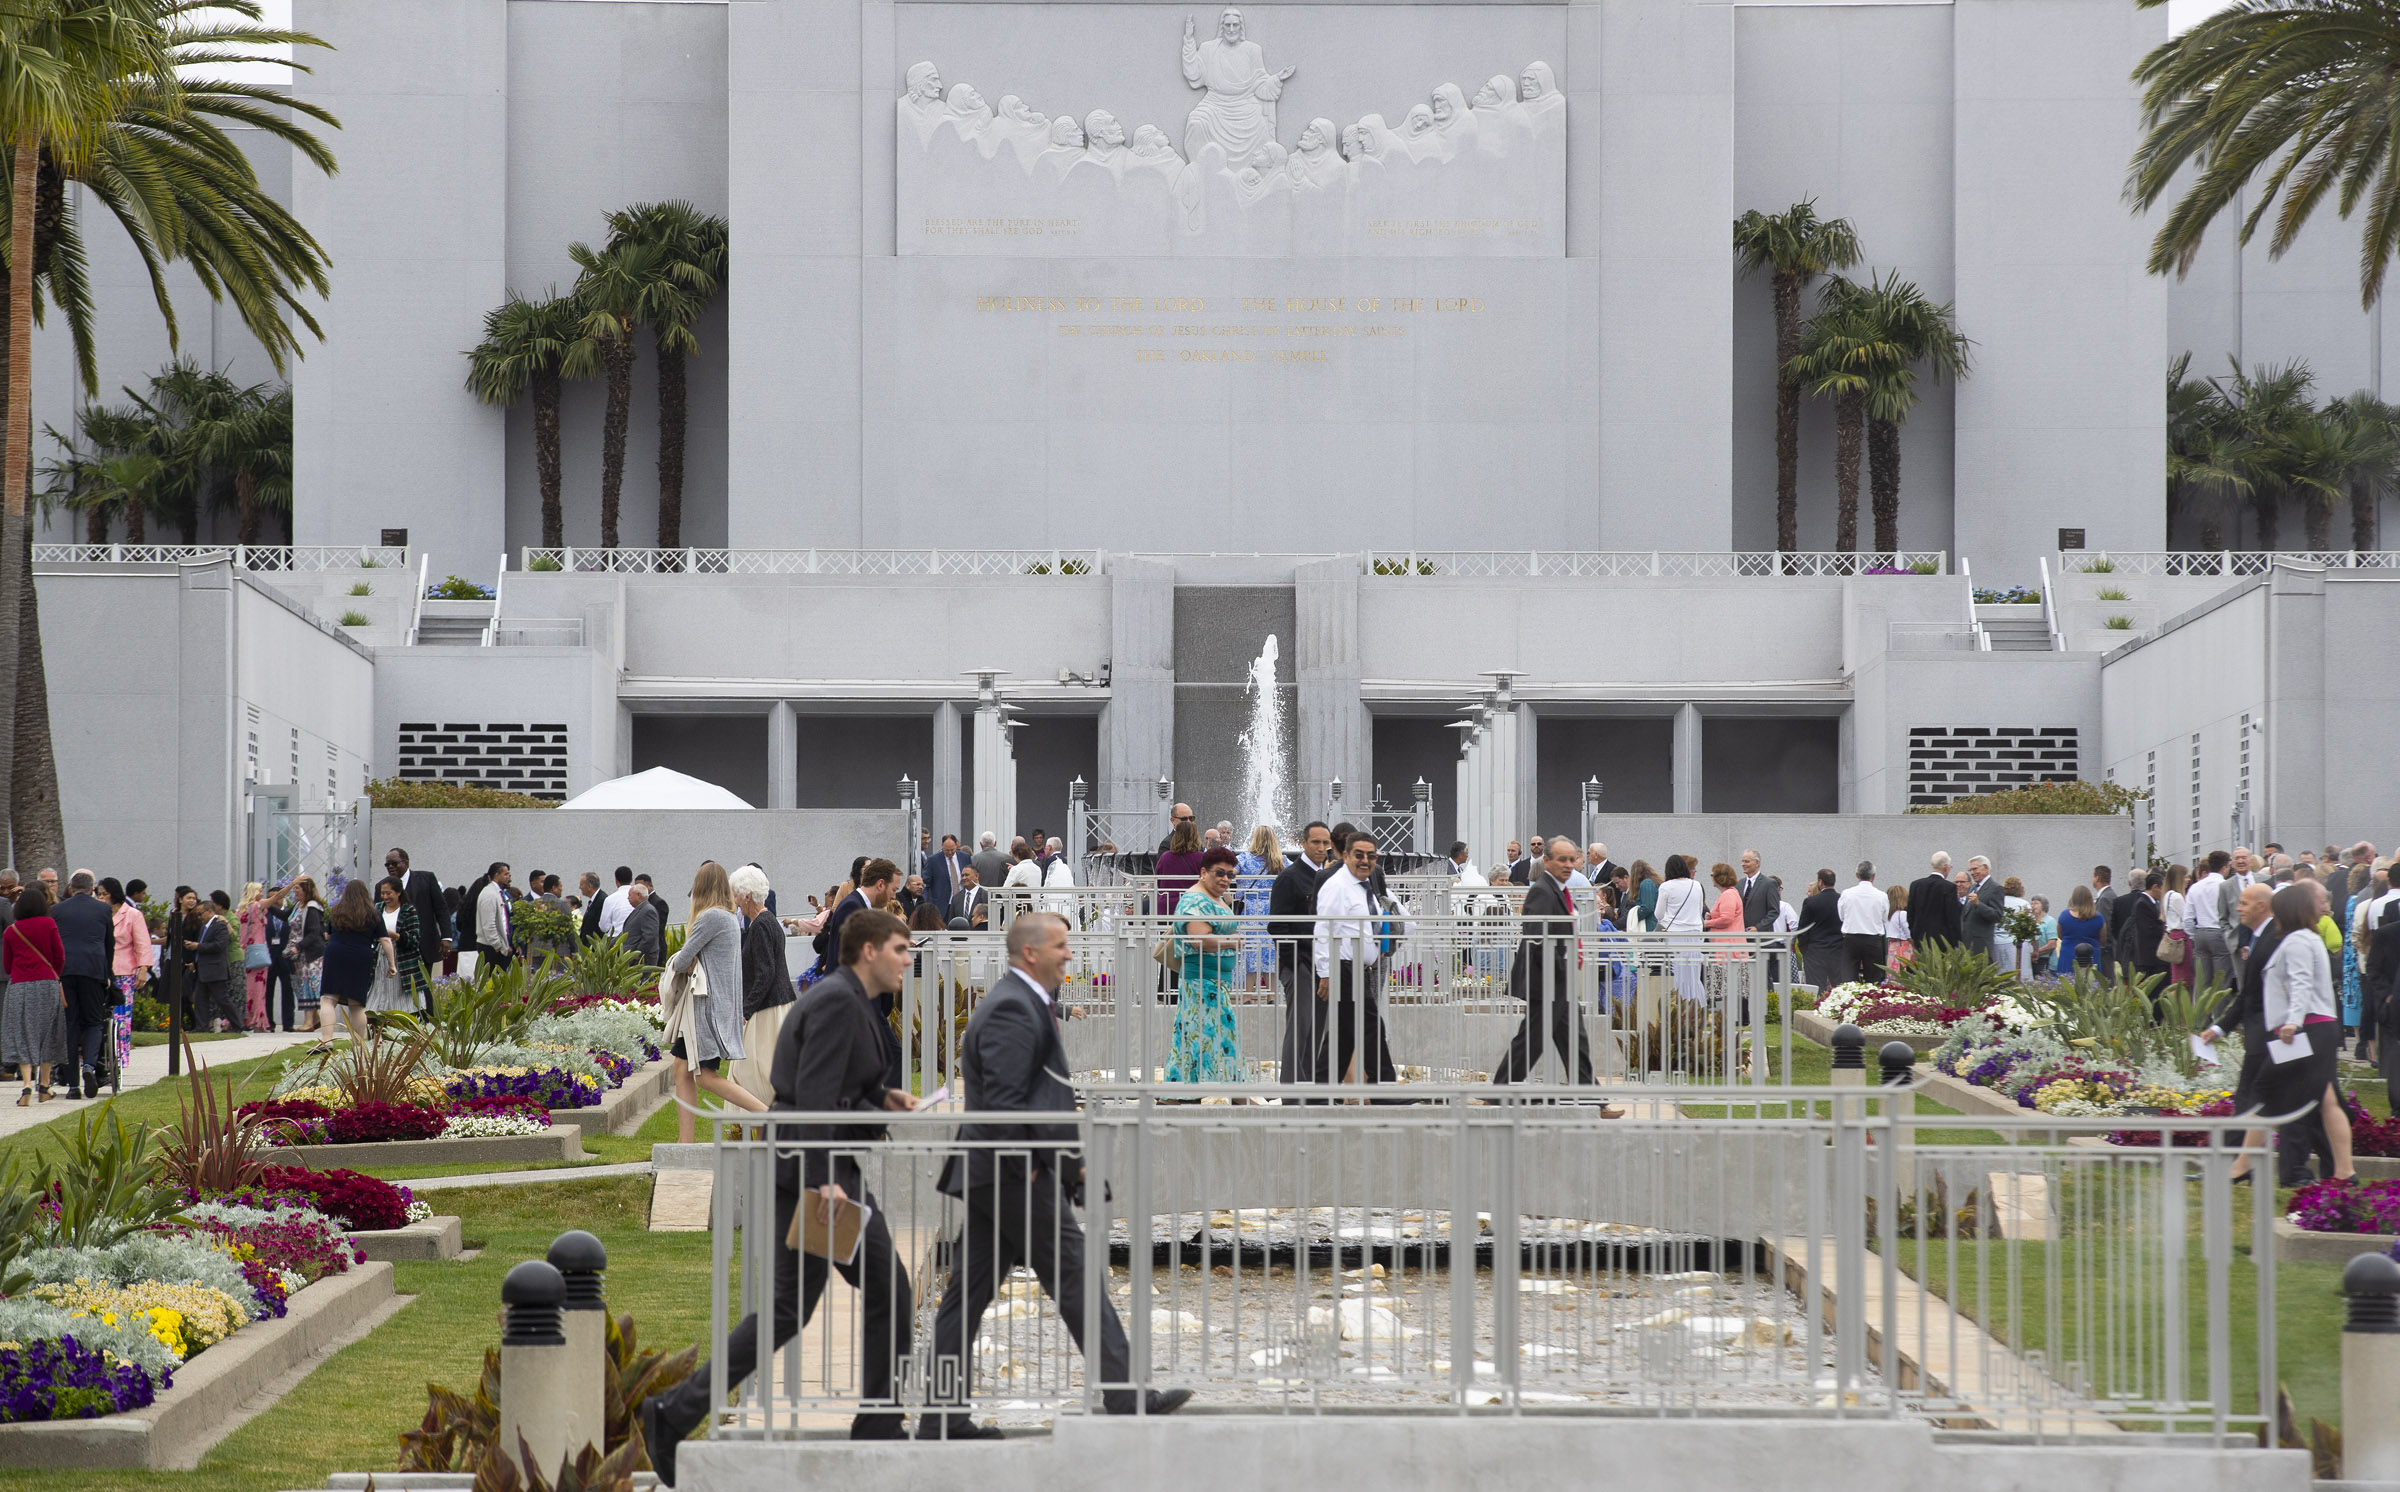 Latter-day Saints enjoy the gardens outside the Oakland California Temple as President Dallin H. Oaks, first counselor in the First Presidency, rededicated the building on Sunday, June 16, 2019.